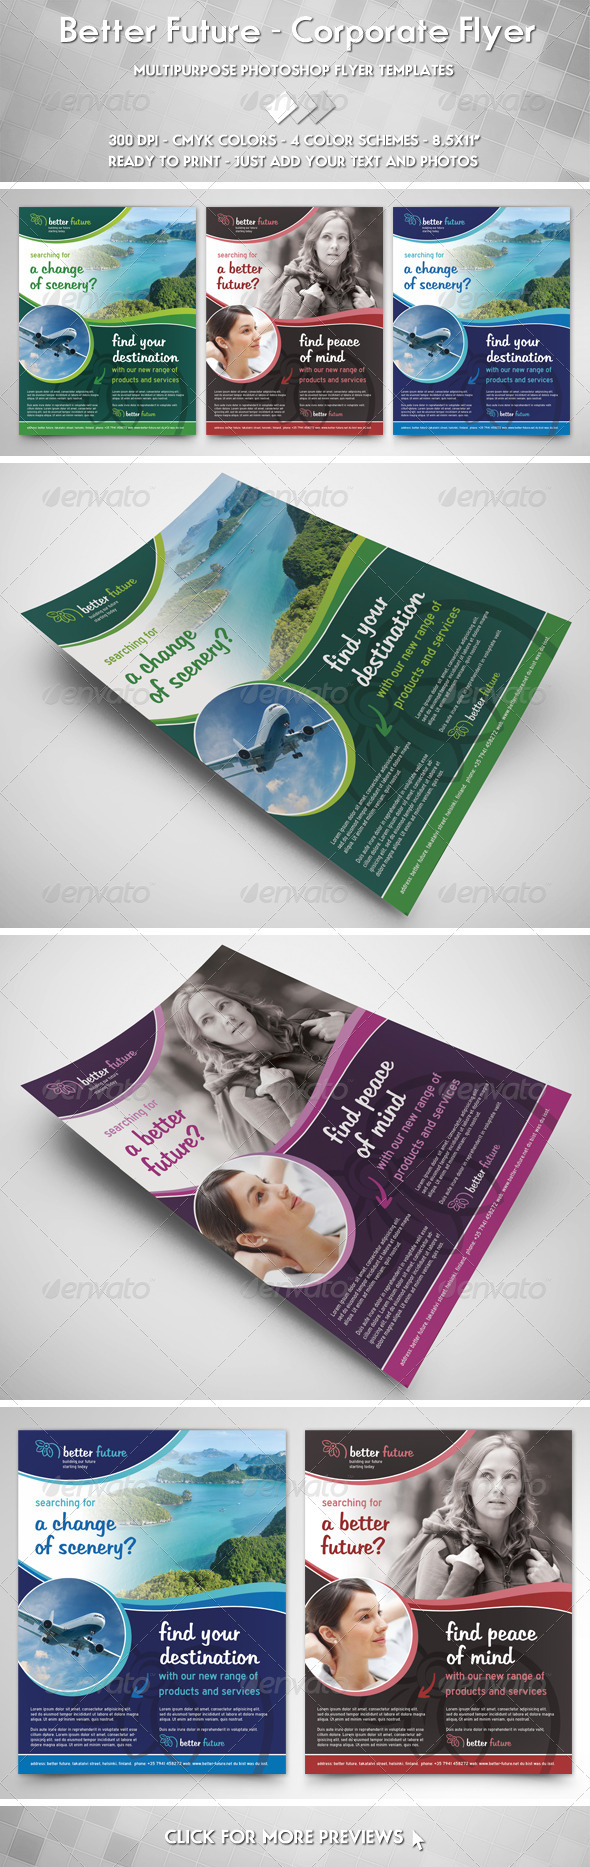 Better Future Flyer - Corporate Flyers